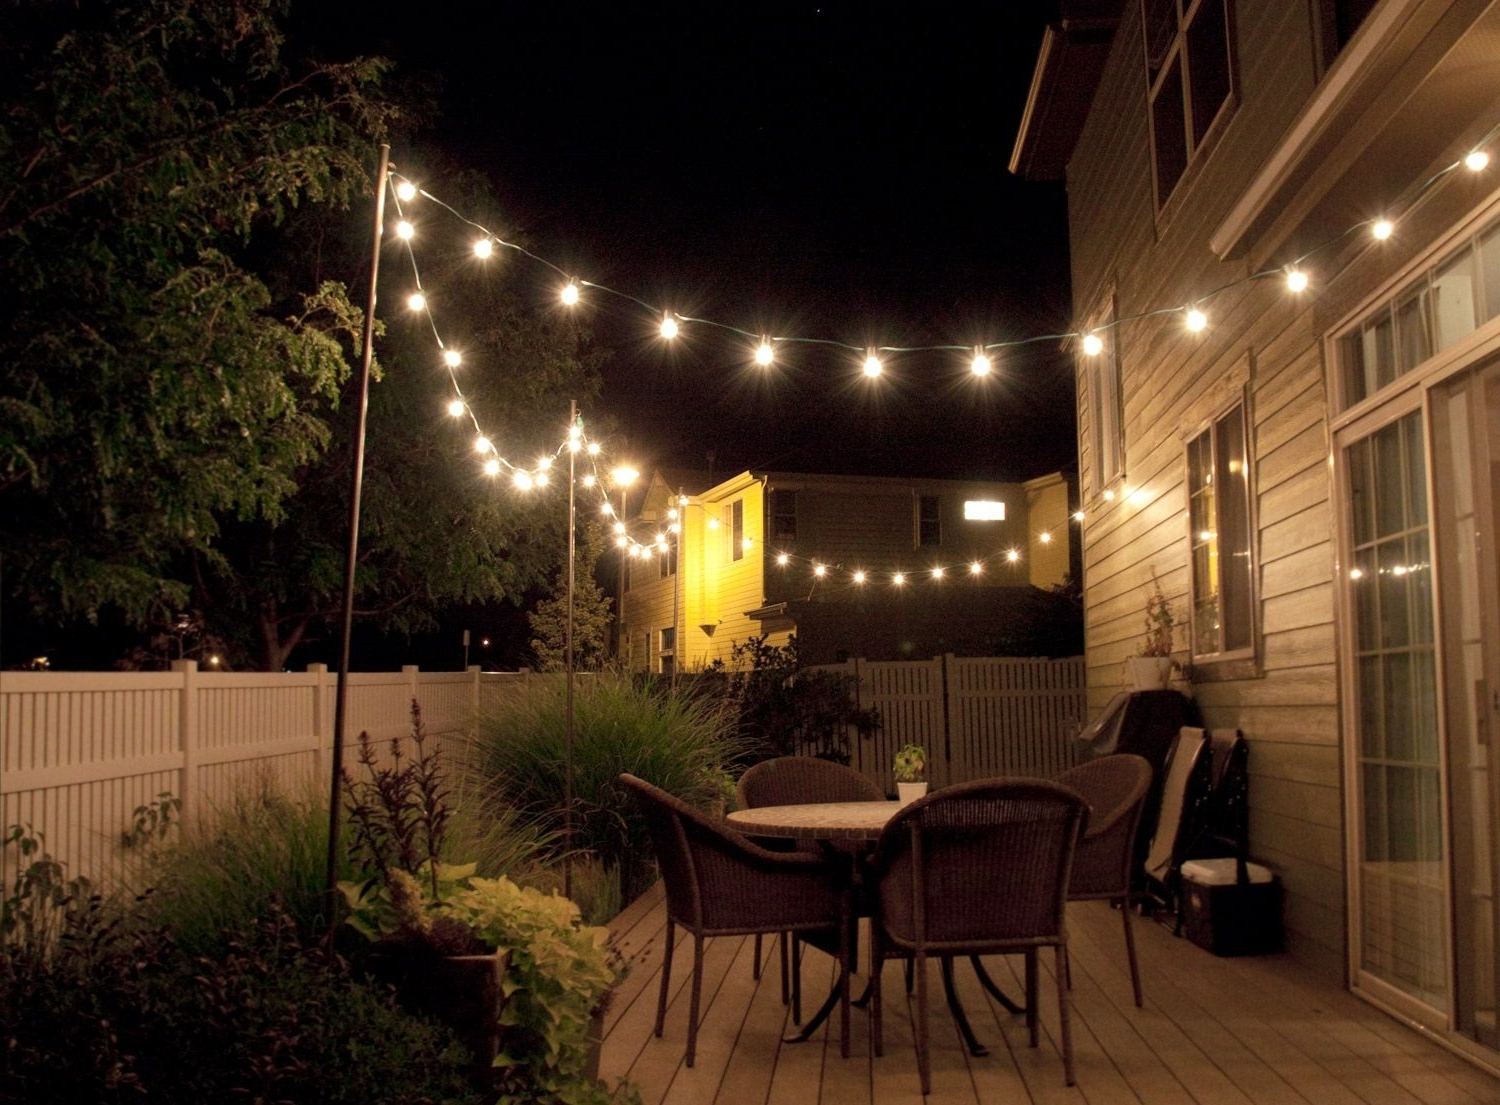 How To Make Inexpensive Poles To Hang String Lights On – Café Style Within Most Up To Date Outdoor String And Patio Lights (View 4 of 20)